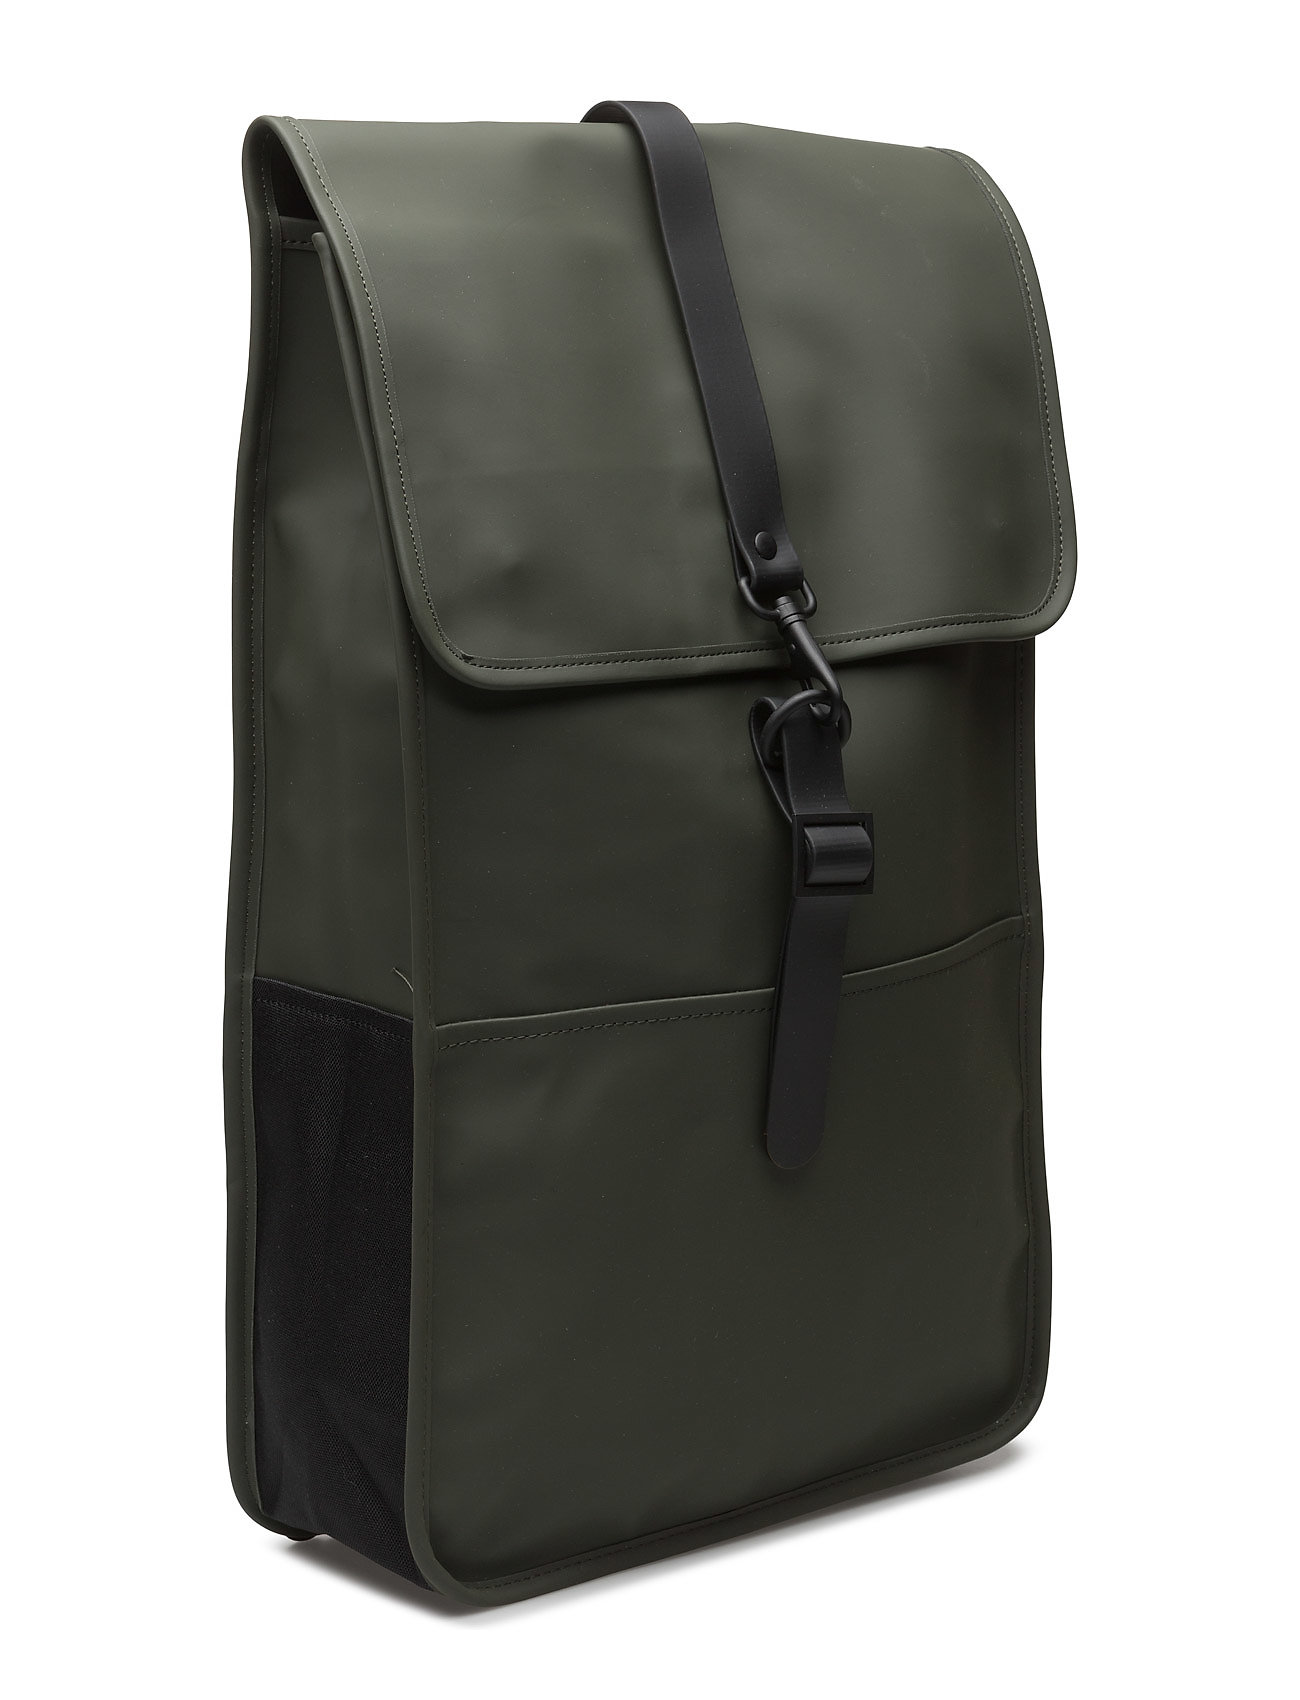 Backpack03 GreenRains Backpack03 GreenRains GreenRains GreenRains Backpack03 GreenRains Backpack03 Backpack03 Backpack03 GreenRains uTOkZXPi